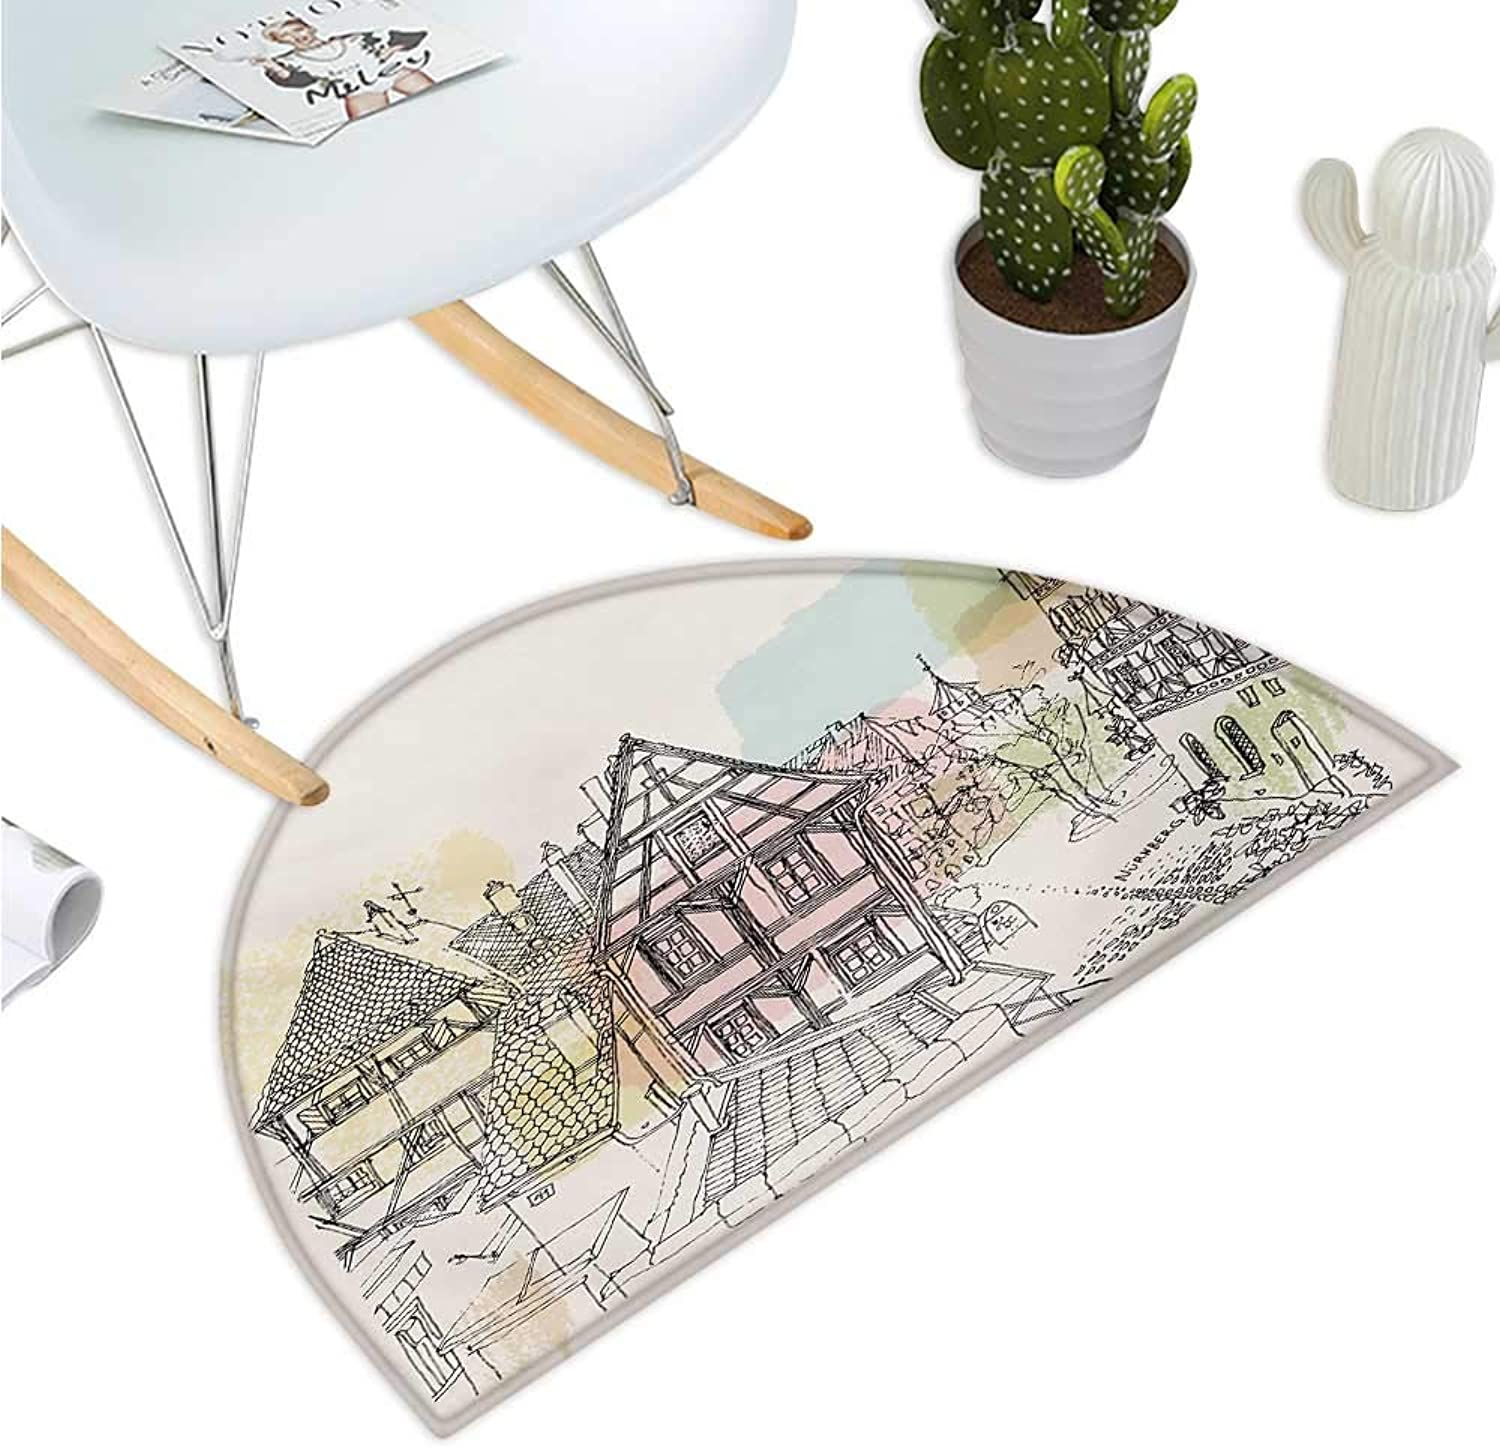 German Semicircular Cushion Historic Traditional Scene Nuremberg Germany Classical Timber Houses Illustration Halfmoon doormats H 39.3  xD 59  Multicolor